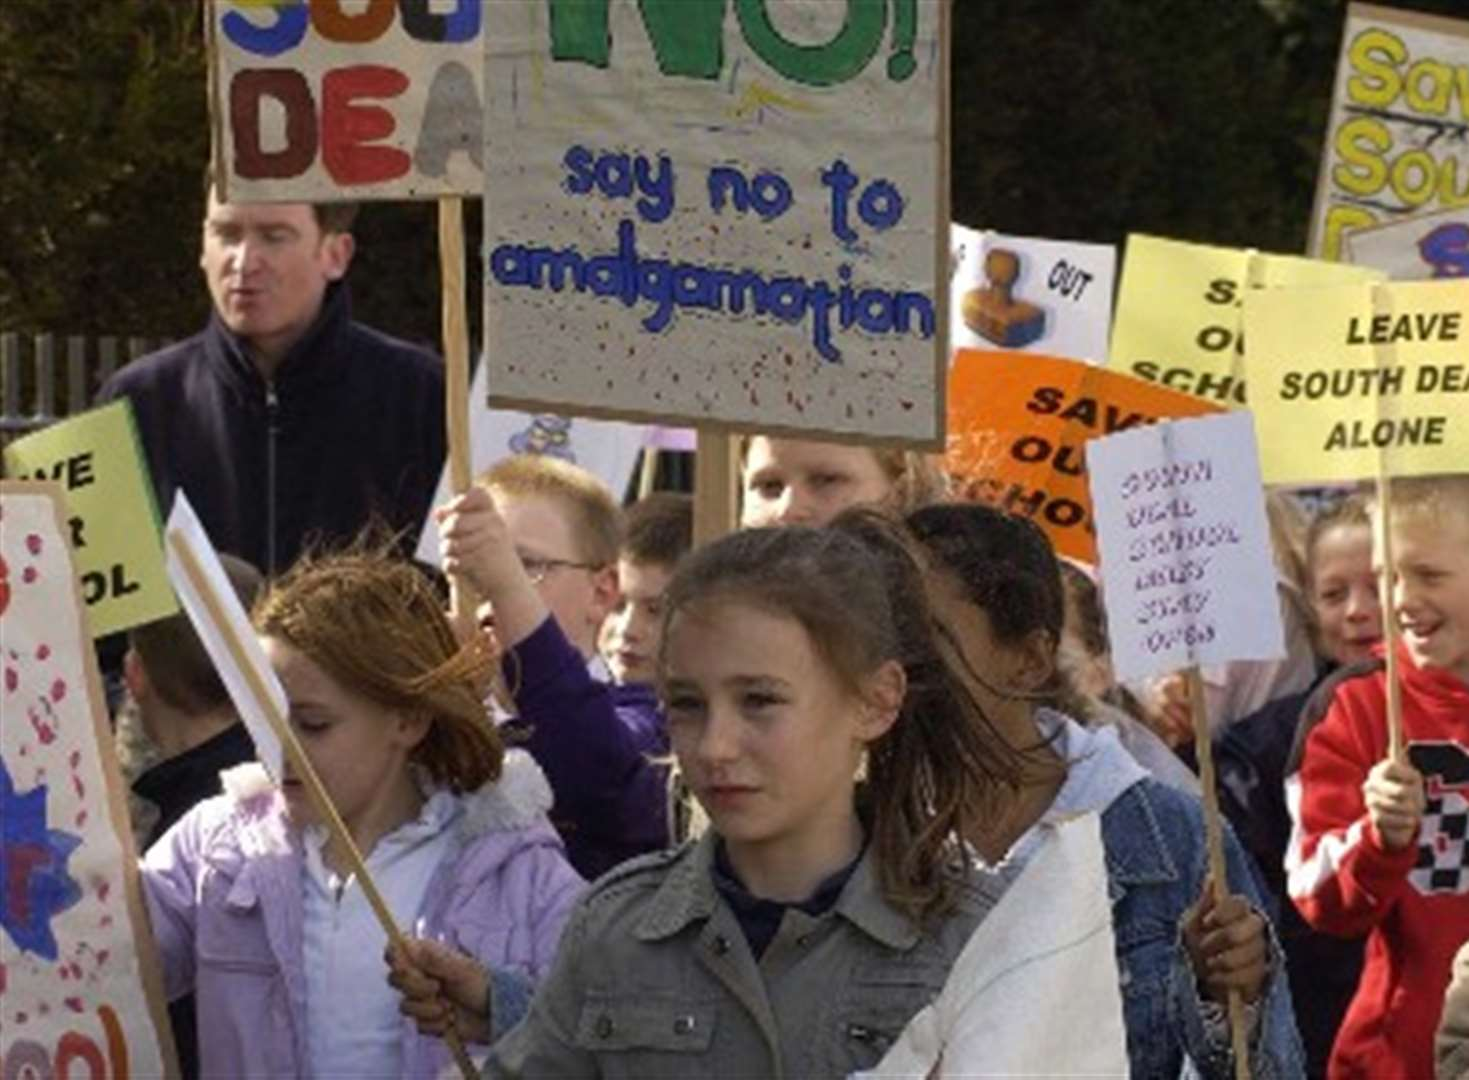 Pupils protest in bid to save school